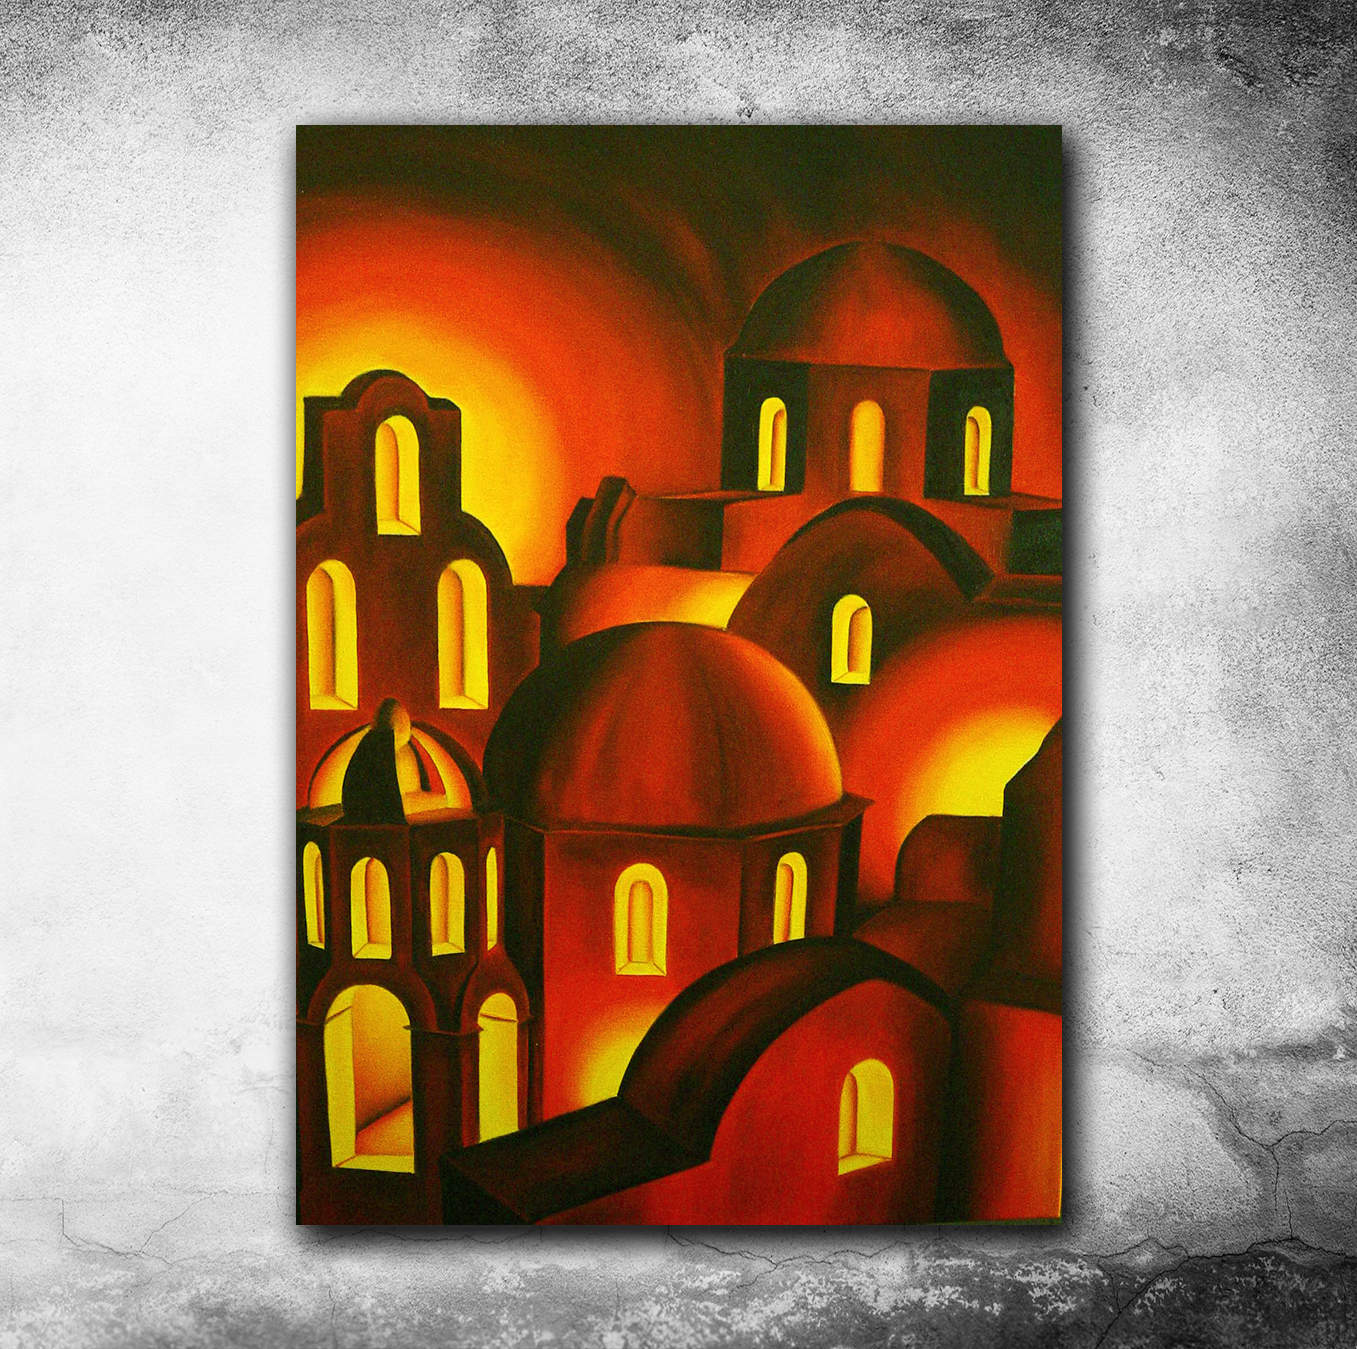 Suggestioni greche - oil on canvas - cm 70x50